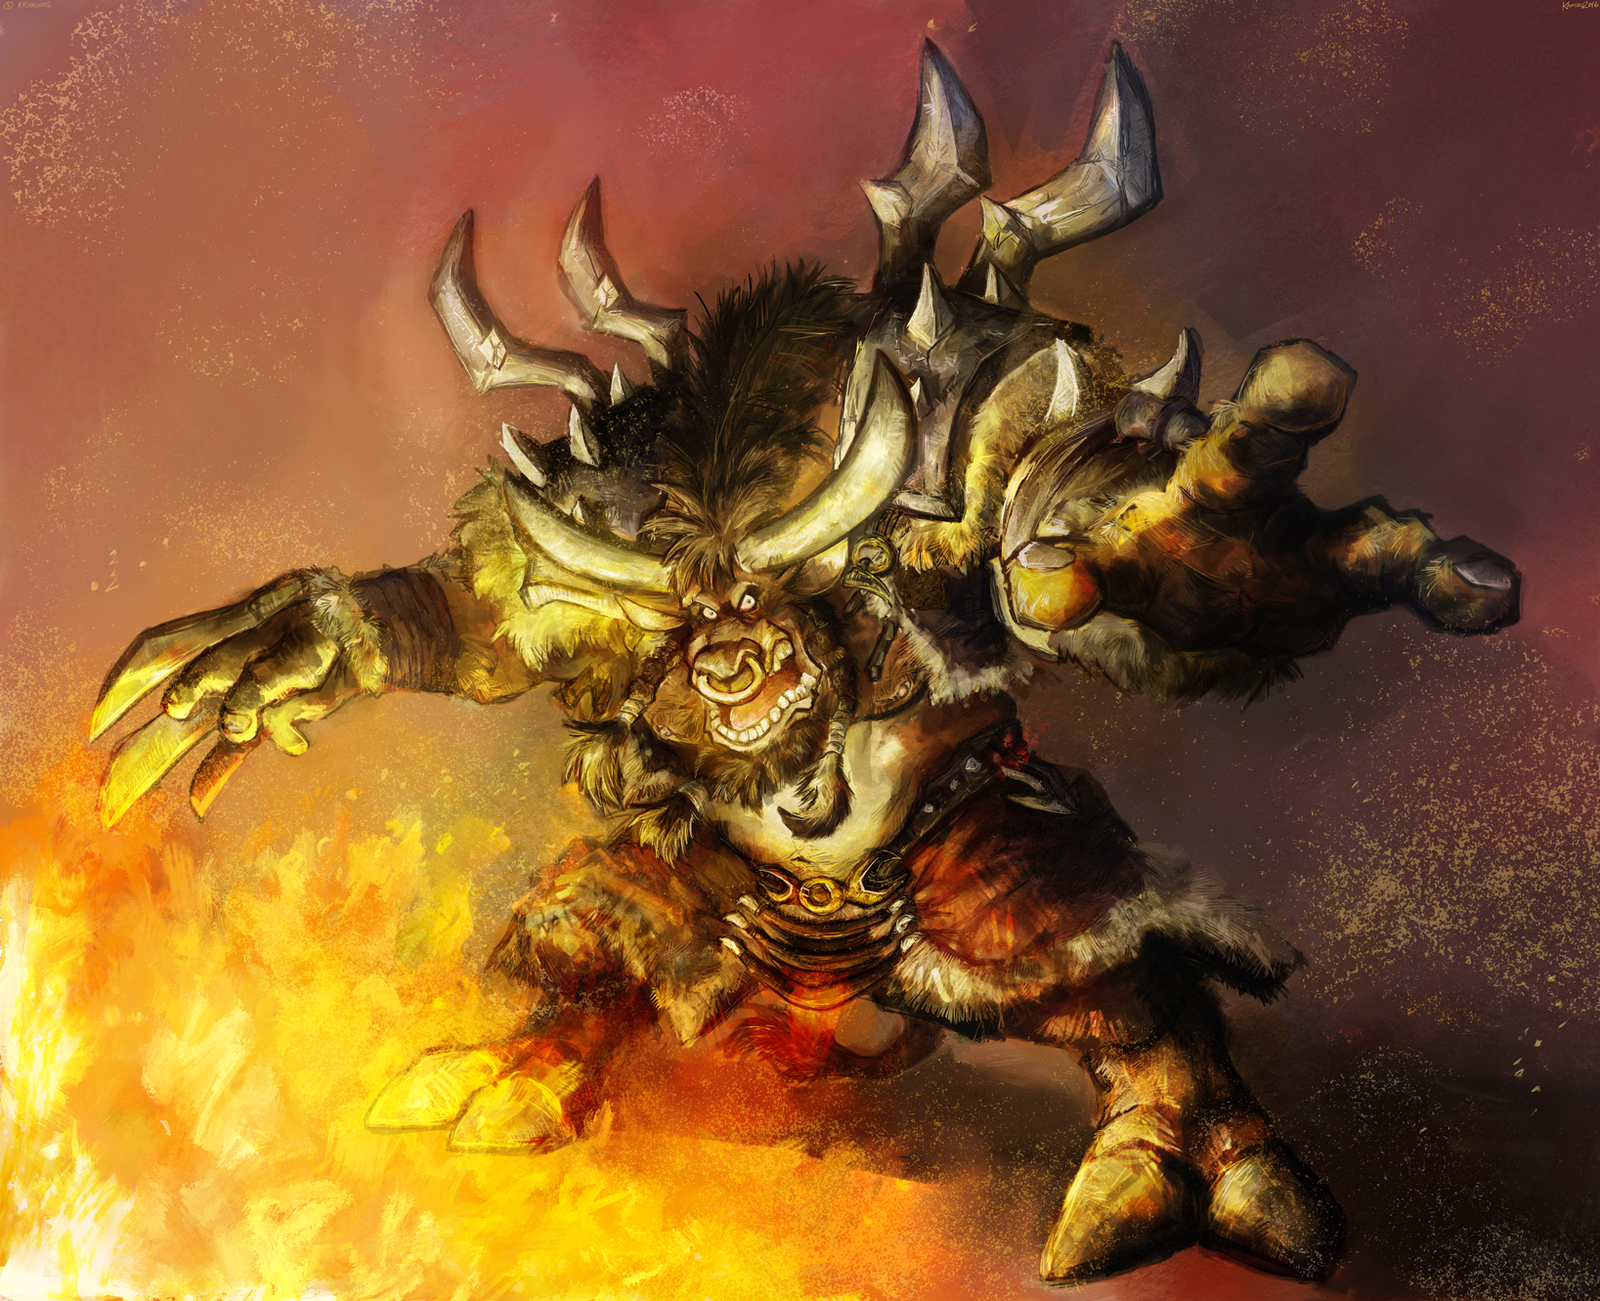 Tauren whorelore monster nsfw pic